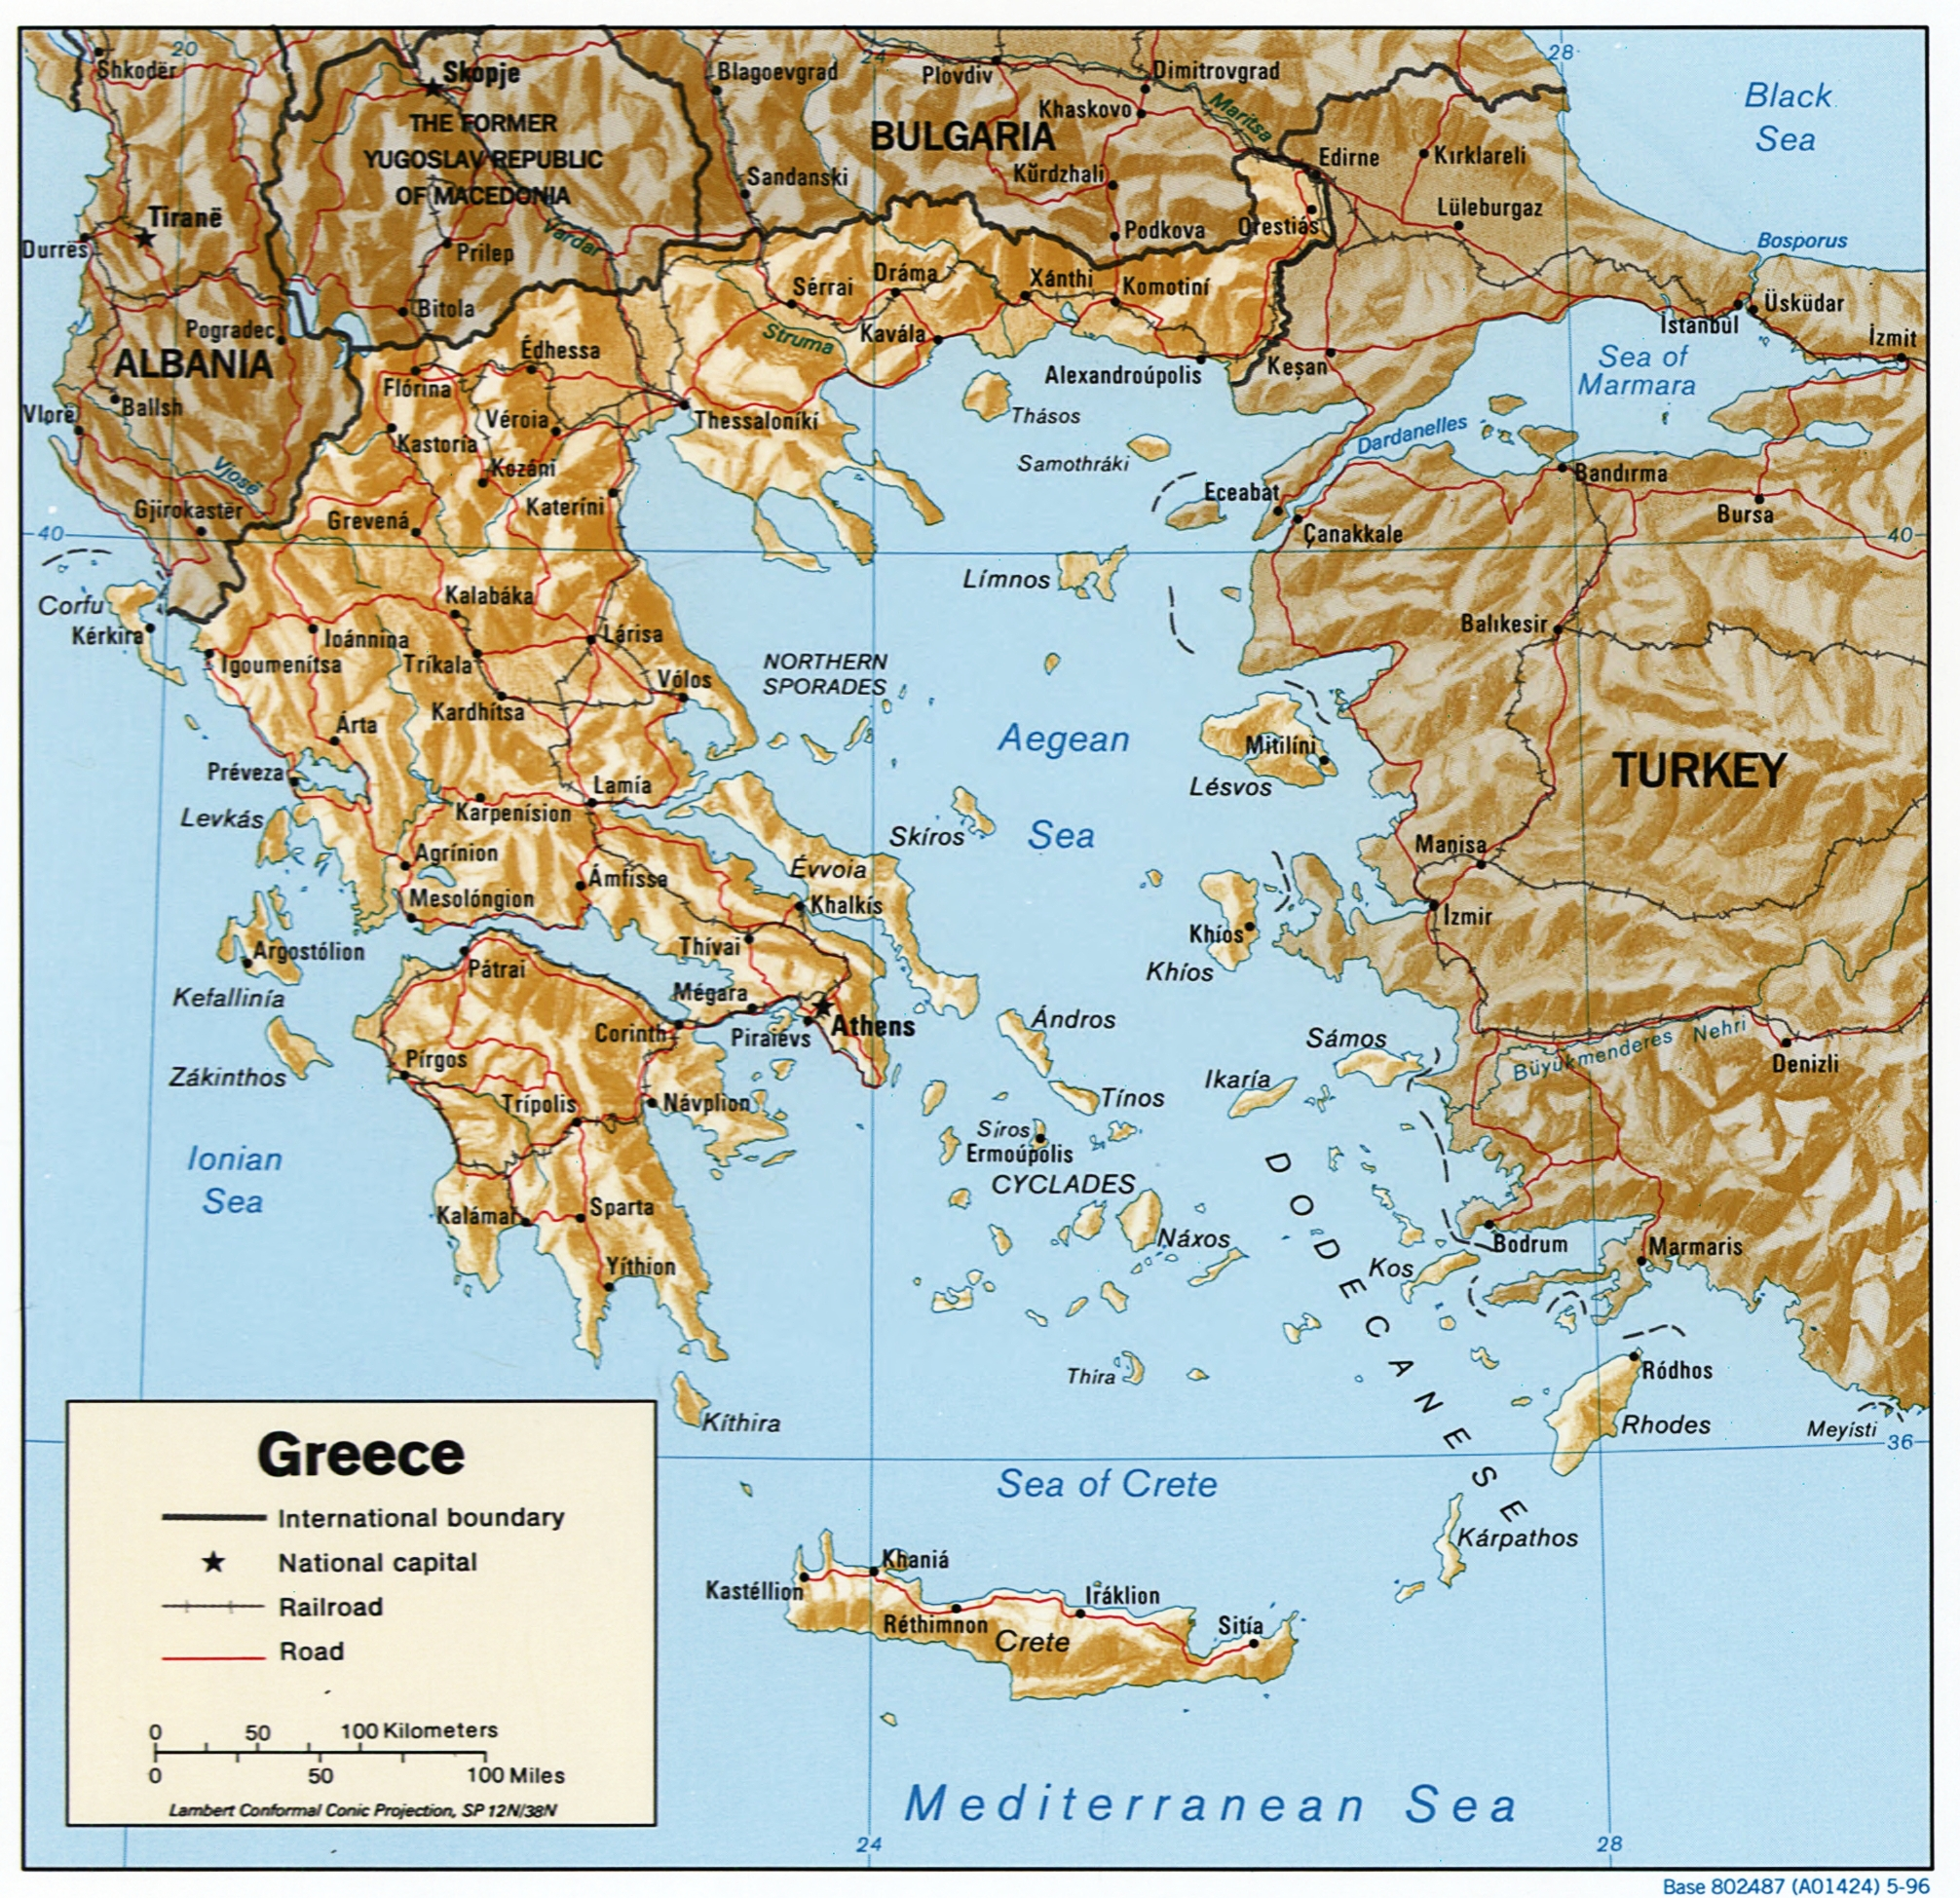 Map of Greece | Facing History and Ourselves Map Greece on ionian sea map, crete map, czech republic map, australia map, ireland map, rome map, france map, sparta map, turkey map, belgium map, poland map, sri lanka map, austria map, serbia map, peru map, germany map, europe map, africa map, portugal map, china map, greek map, japan map, iceland map, mediterranean map, norway map, united kingdom map, spain map, england map, cyprus map, canada map, denmark map, india map, italy map,